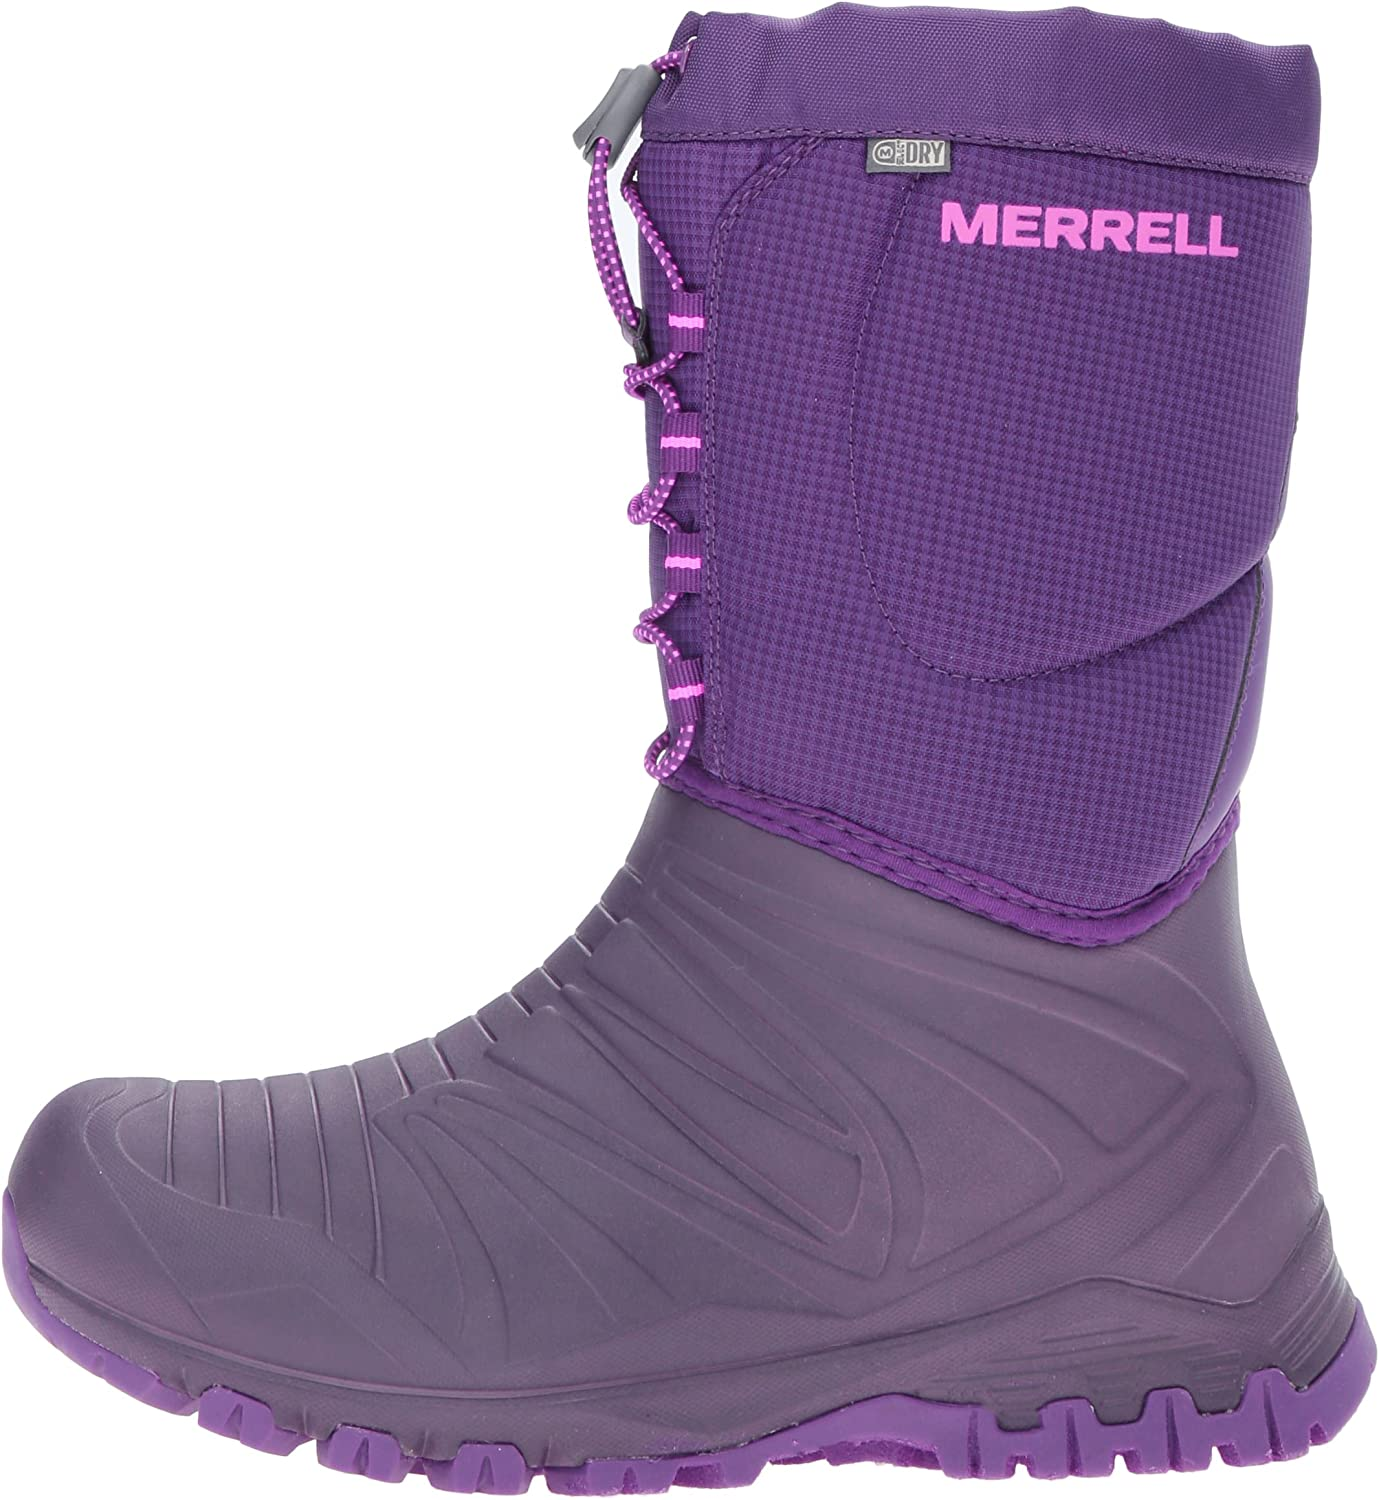 Merrell Unisexs Light Tech LTR Quick Close WTR Leisure time Boots and Childrens Sportwear